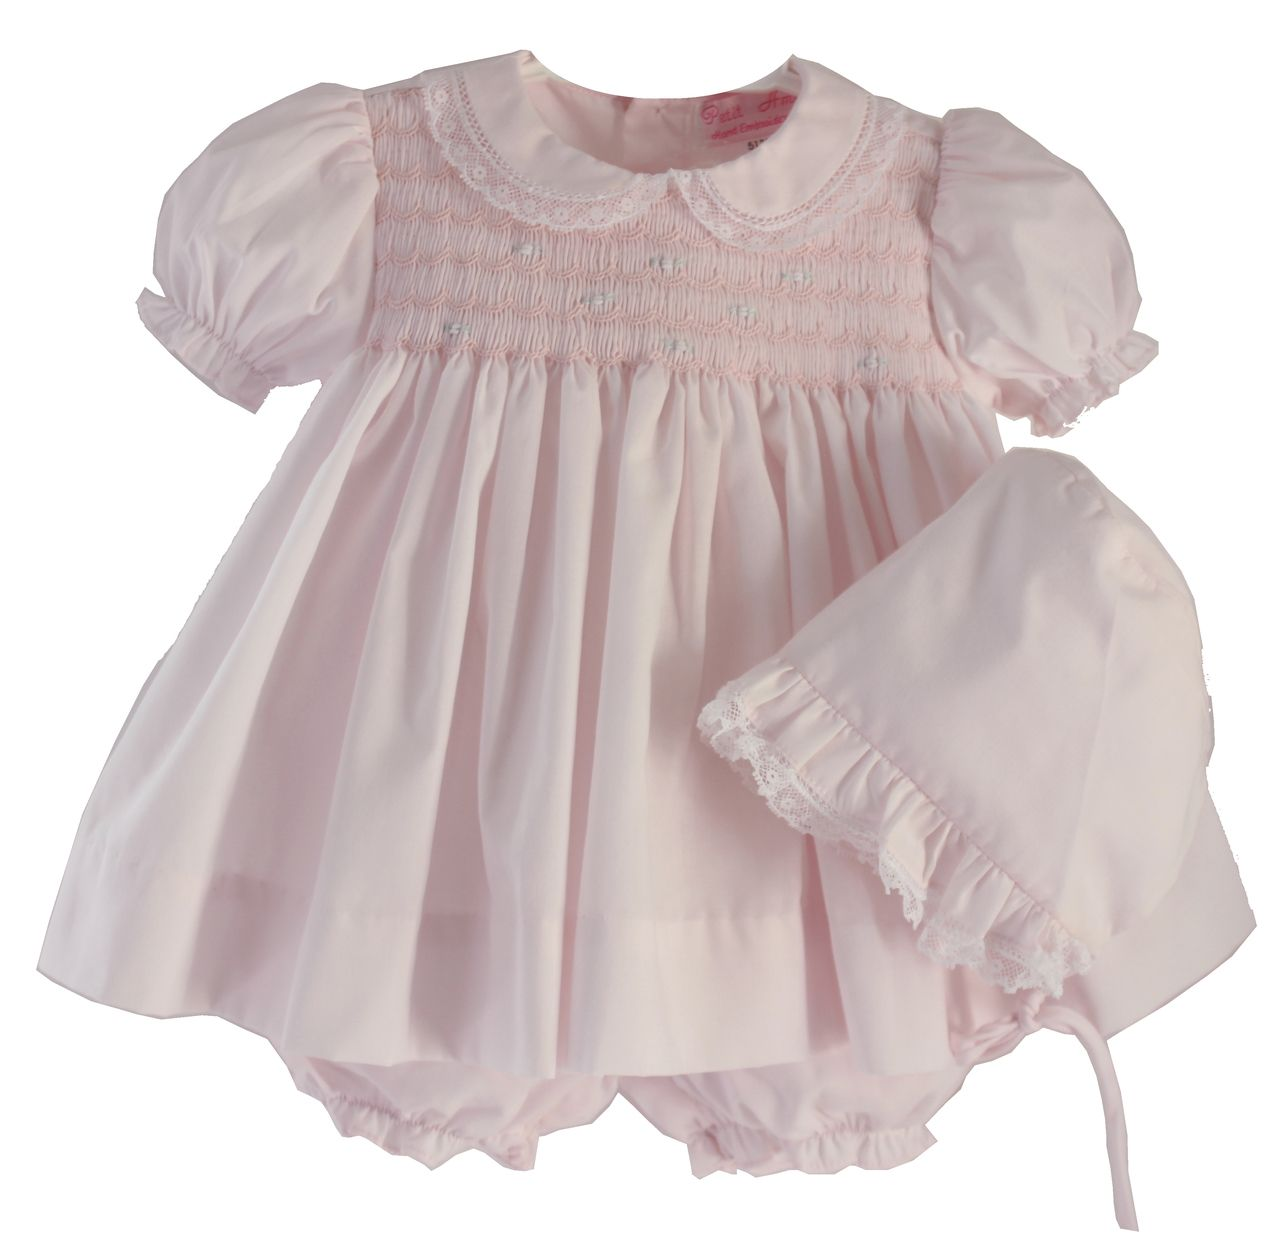 Beautiful newborn girls pink smocked dress comes with bonnet and